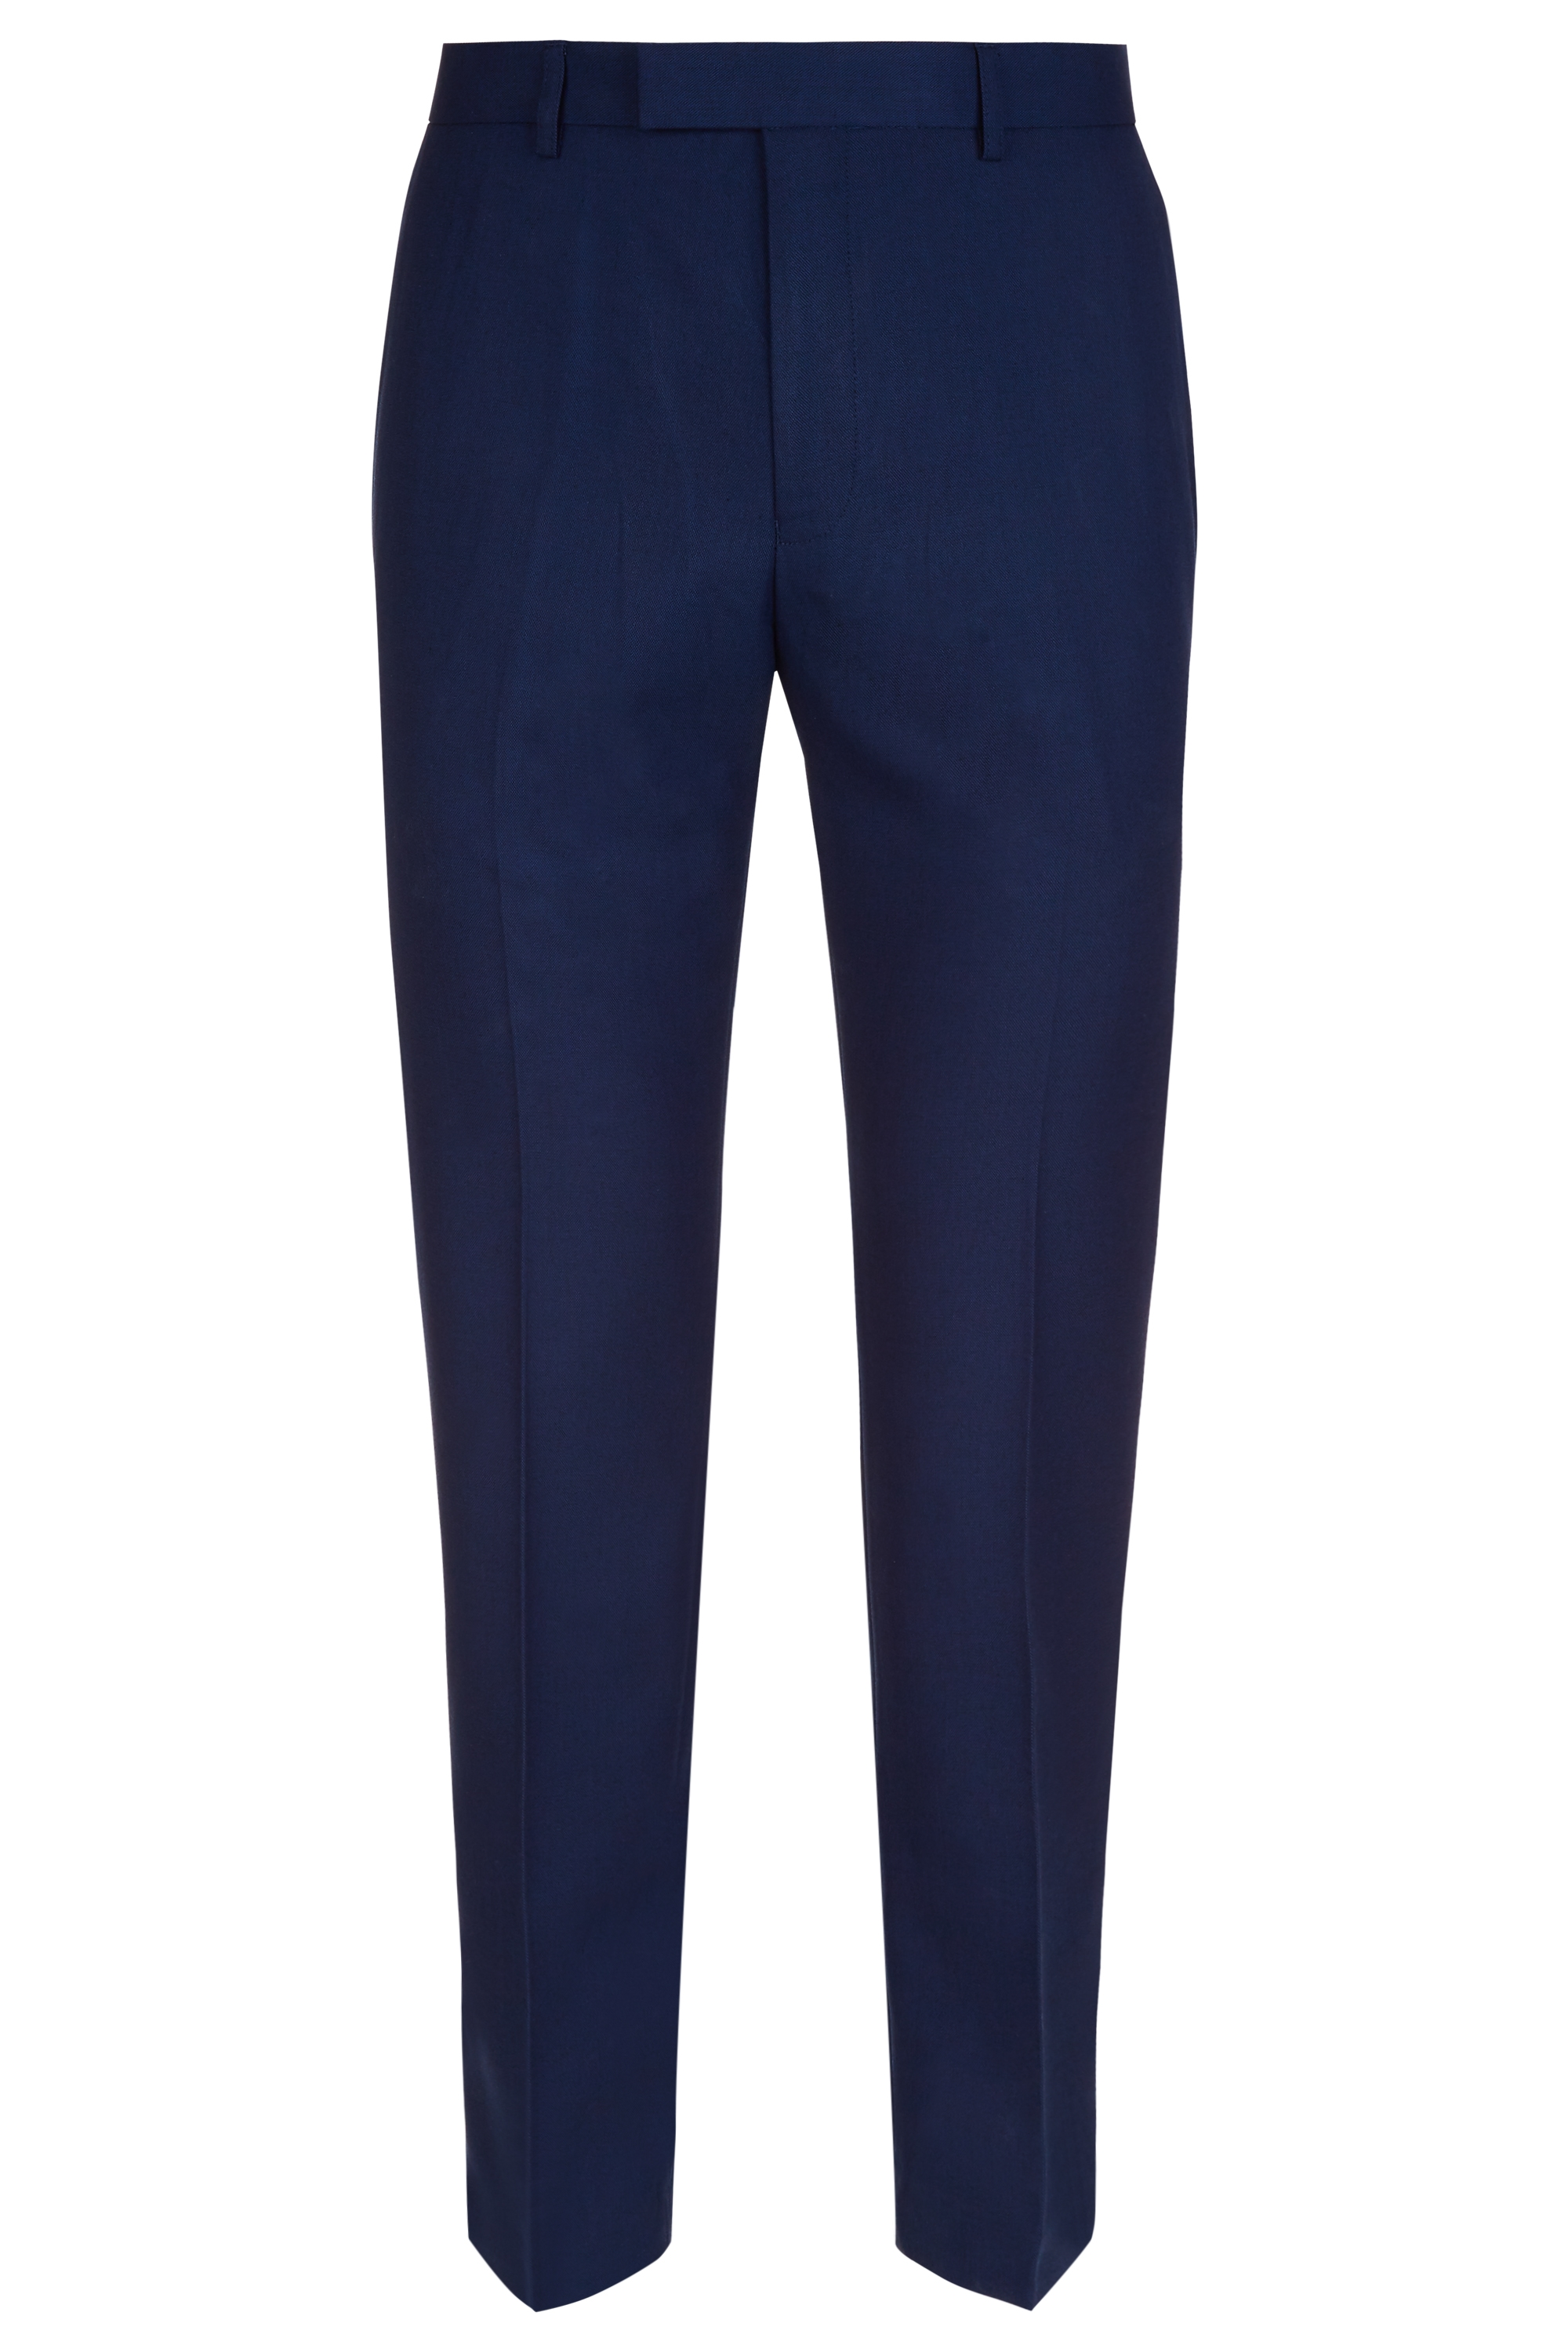 1a3a939592 Details about Moss Esquire Mens Navy Blue Suit Trousers Slim Fit Pleated  Formal Pants